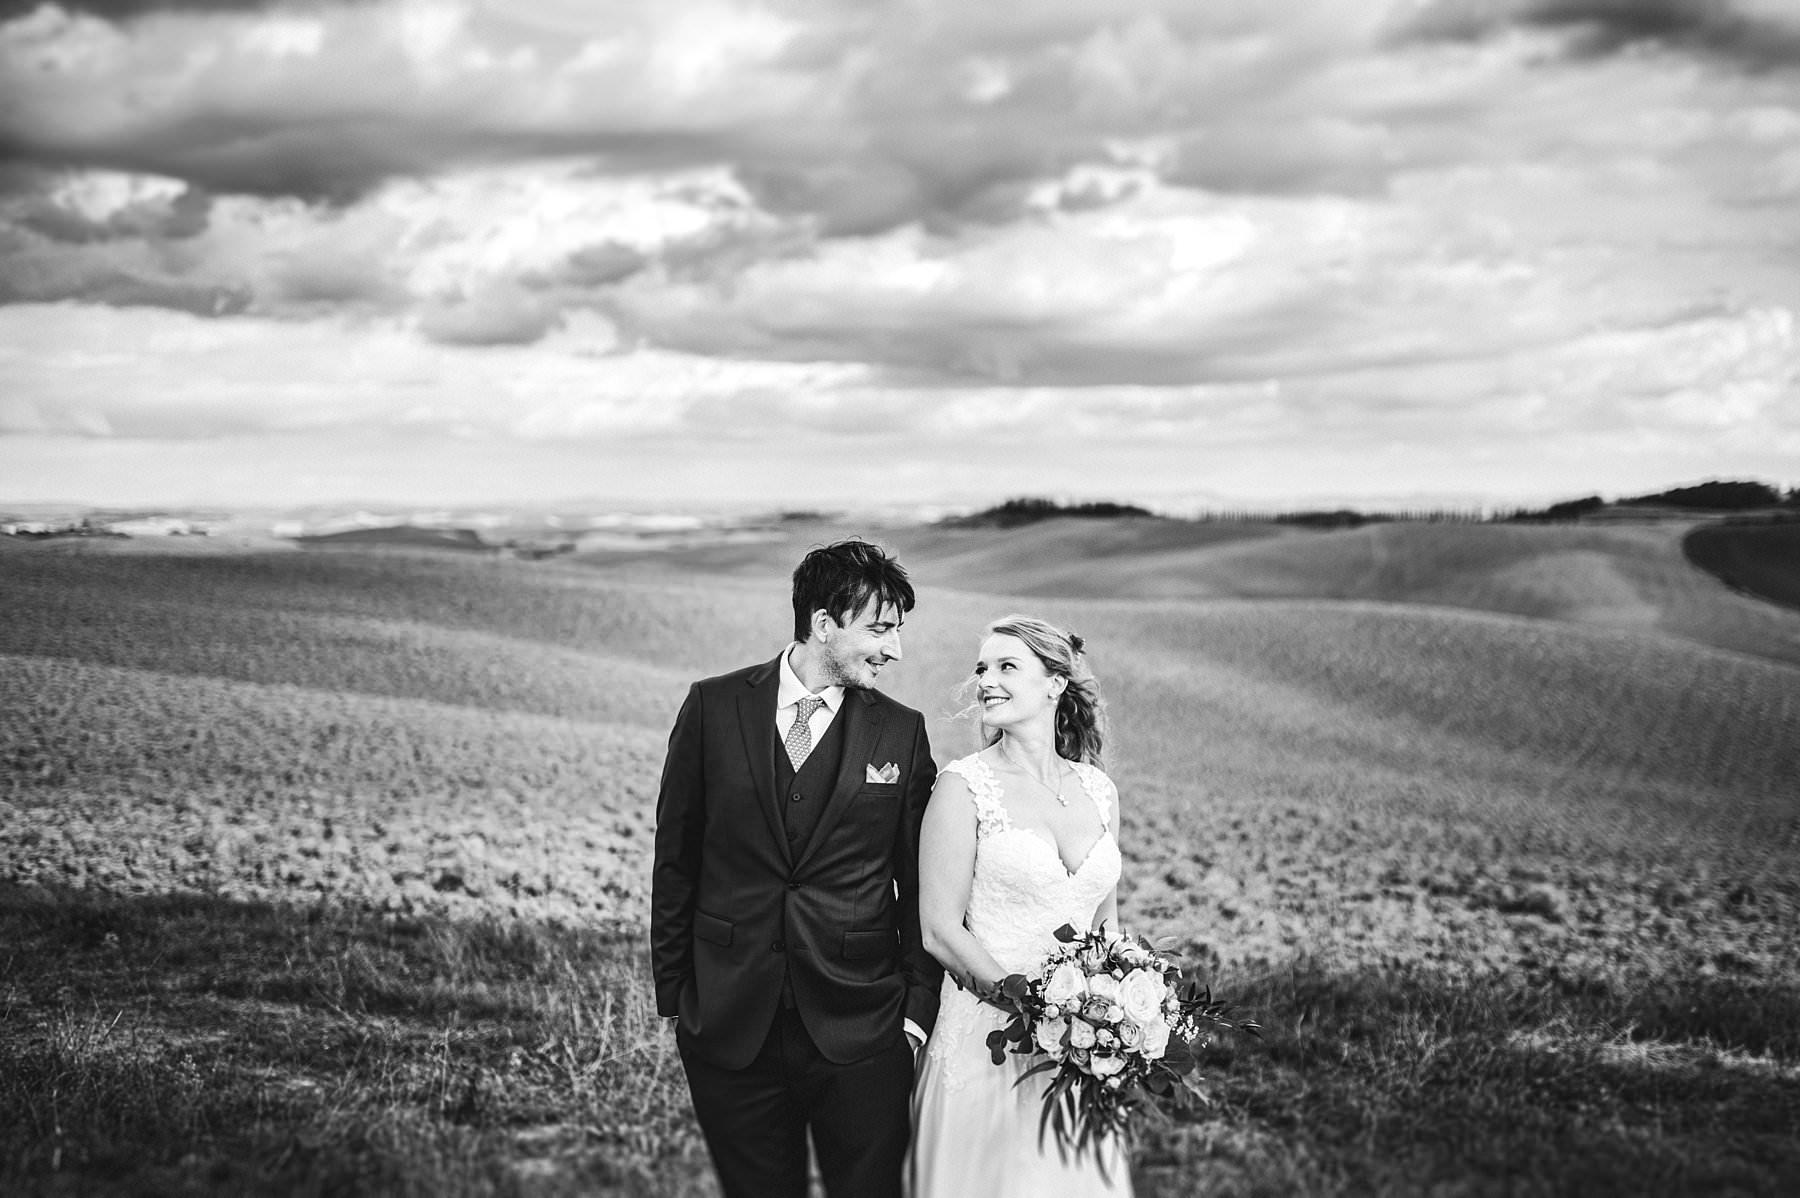 Destination intimate elopement wedding in Tuscany countryside. Bride and groom portrait with gorgeous rolling hills as background